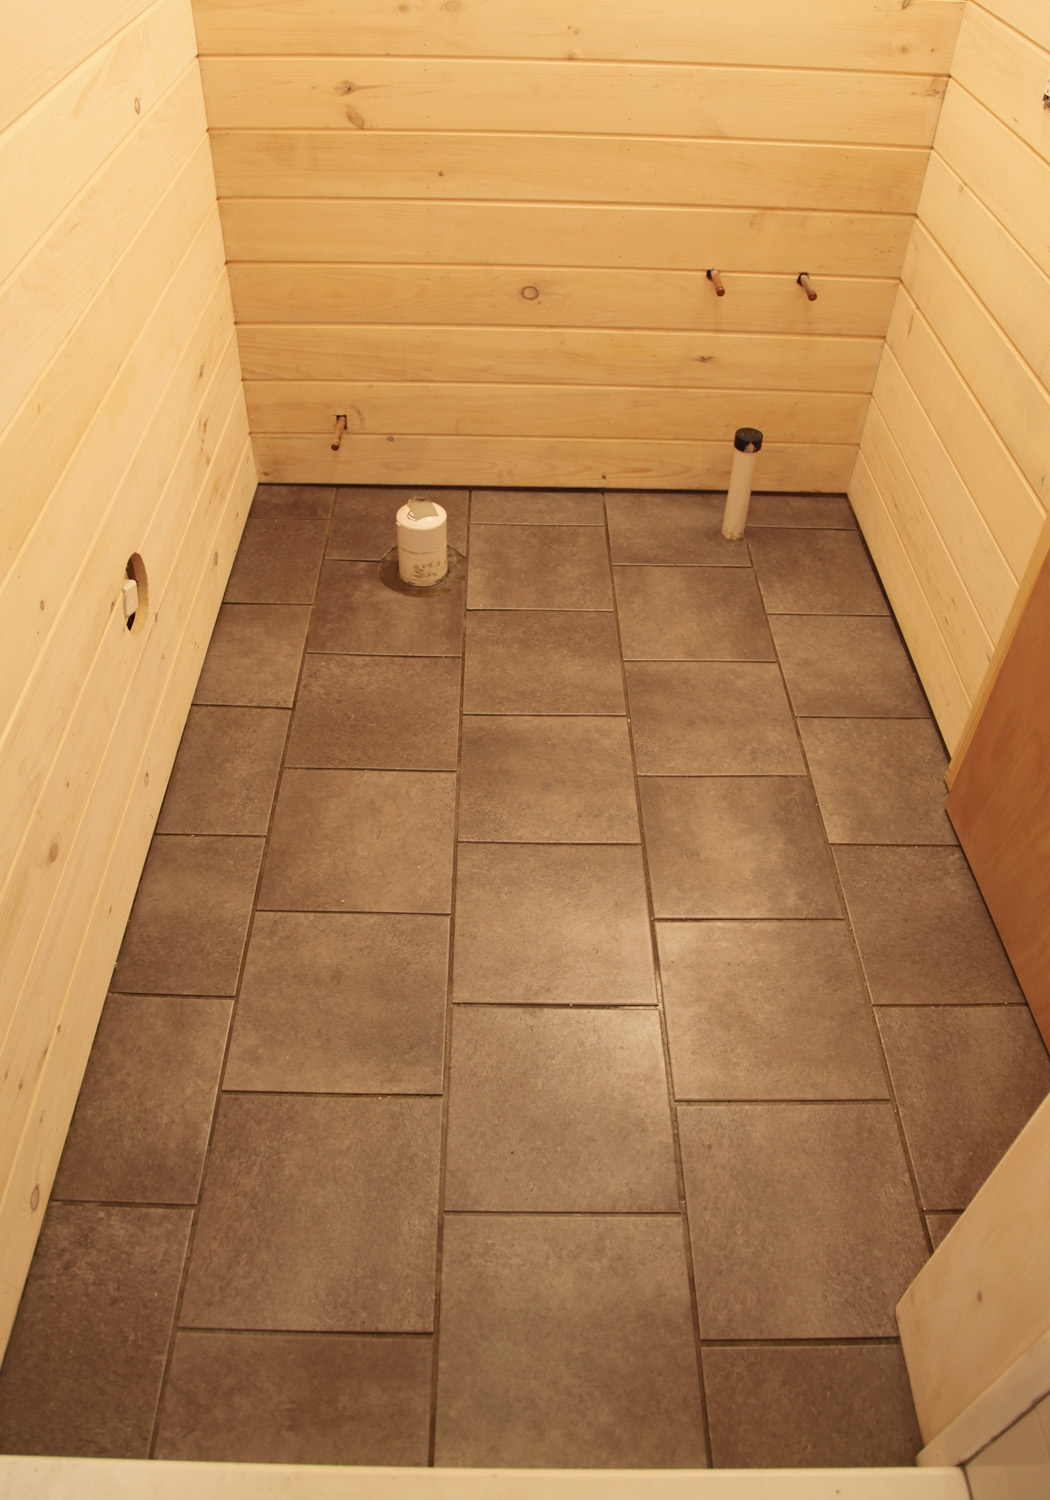 Tile Over Wet Basement Concrete Floor